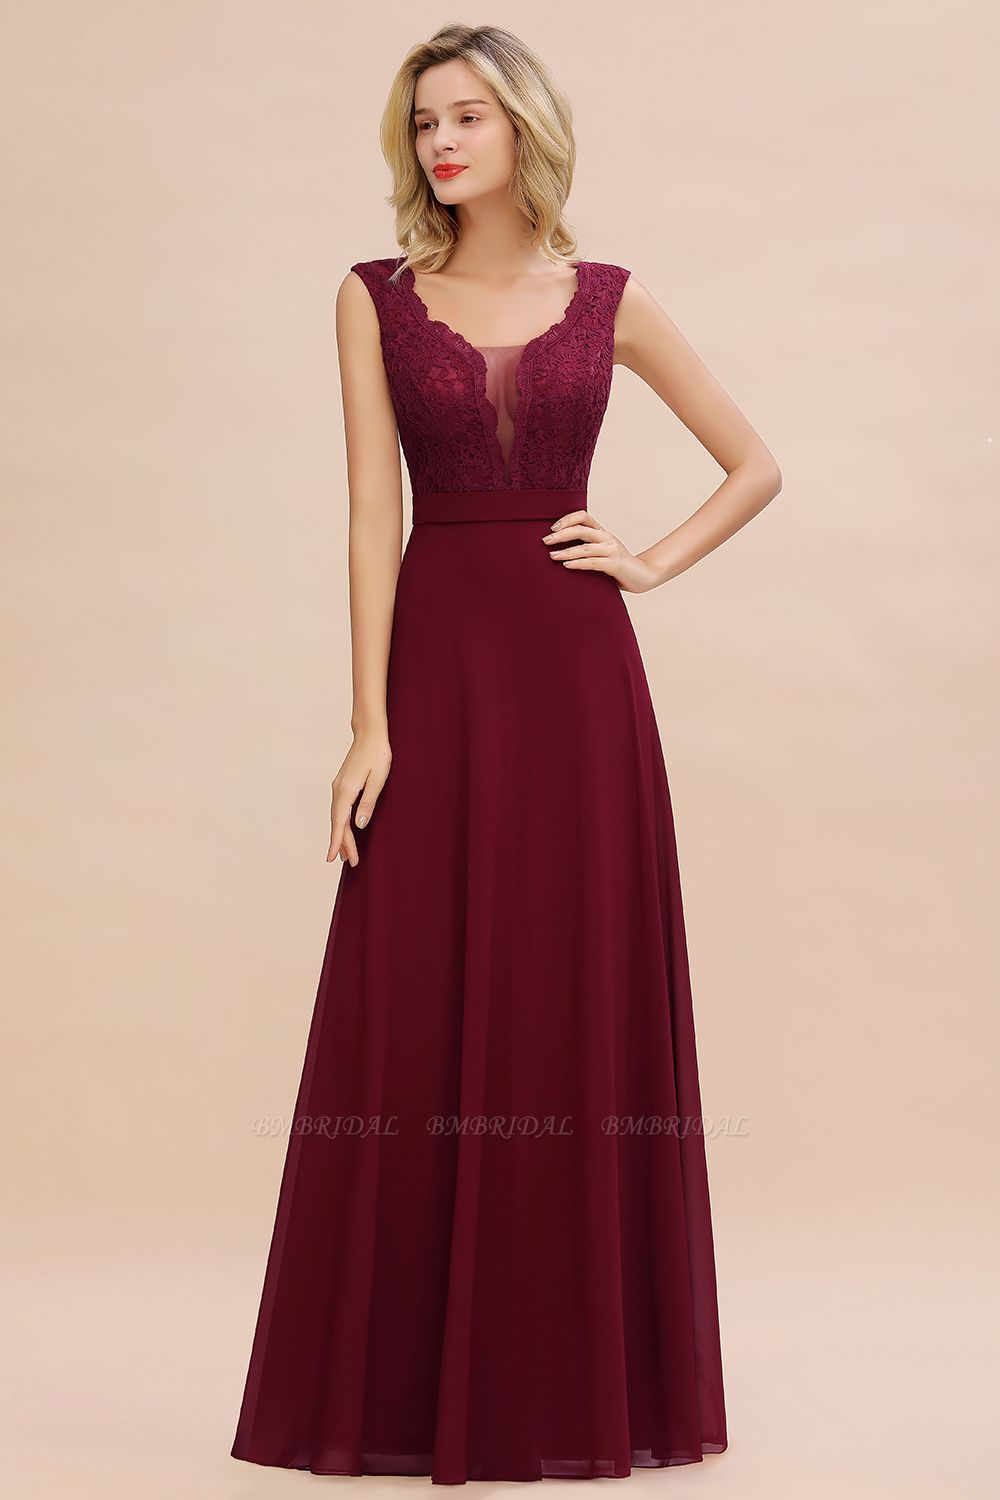 Burgundy Bridesmaid Dresses | BM Bridal